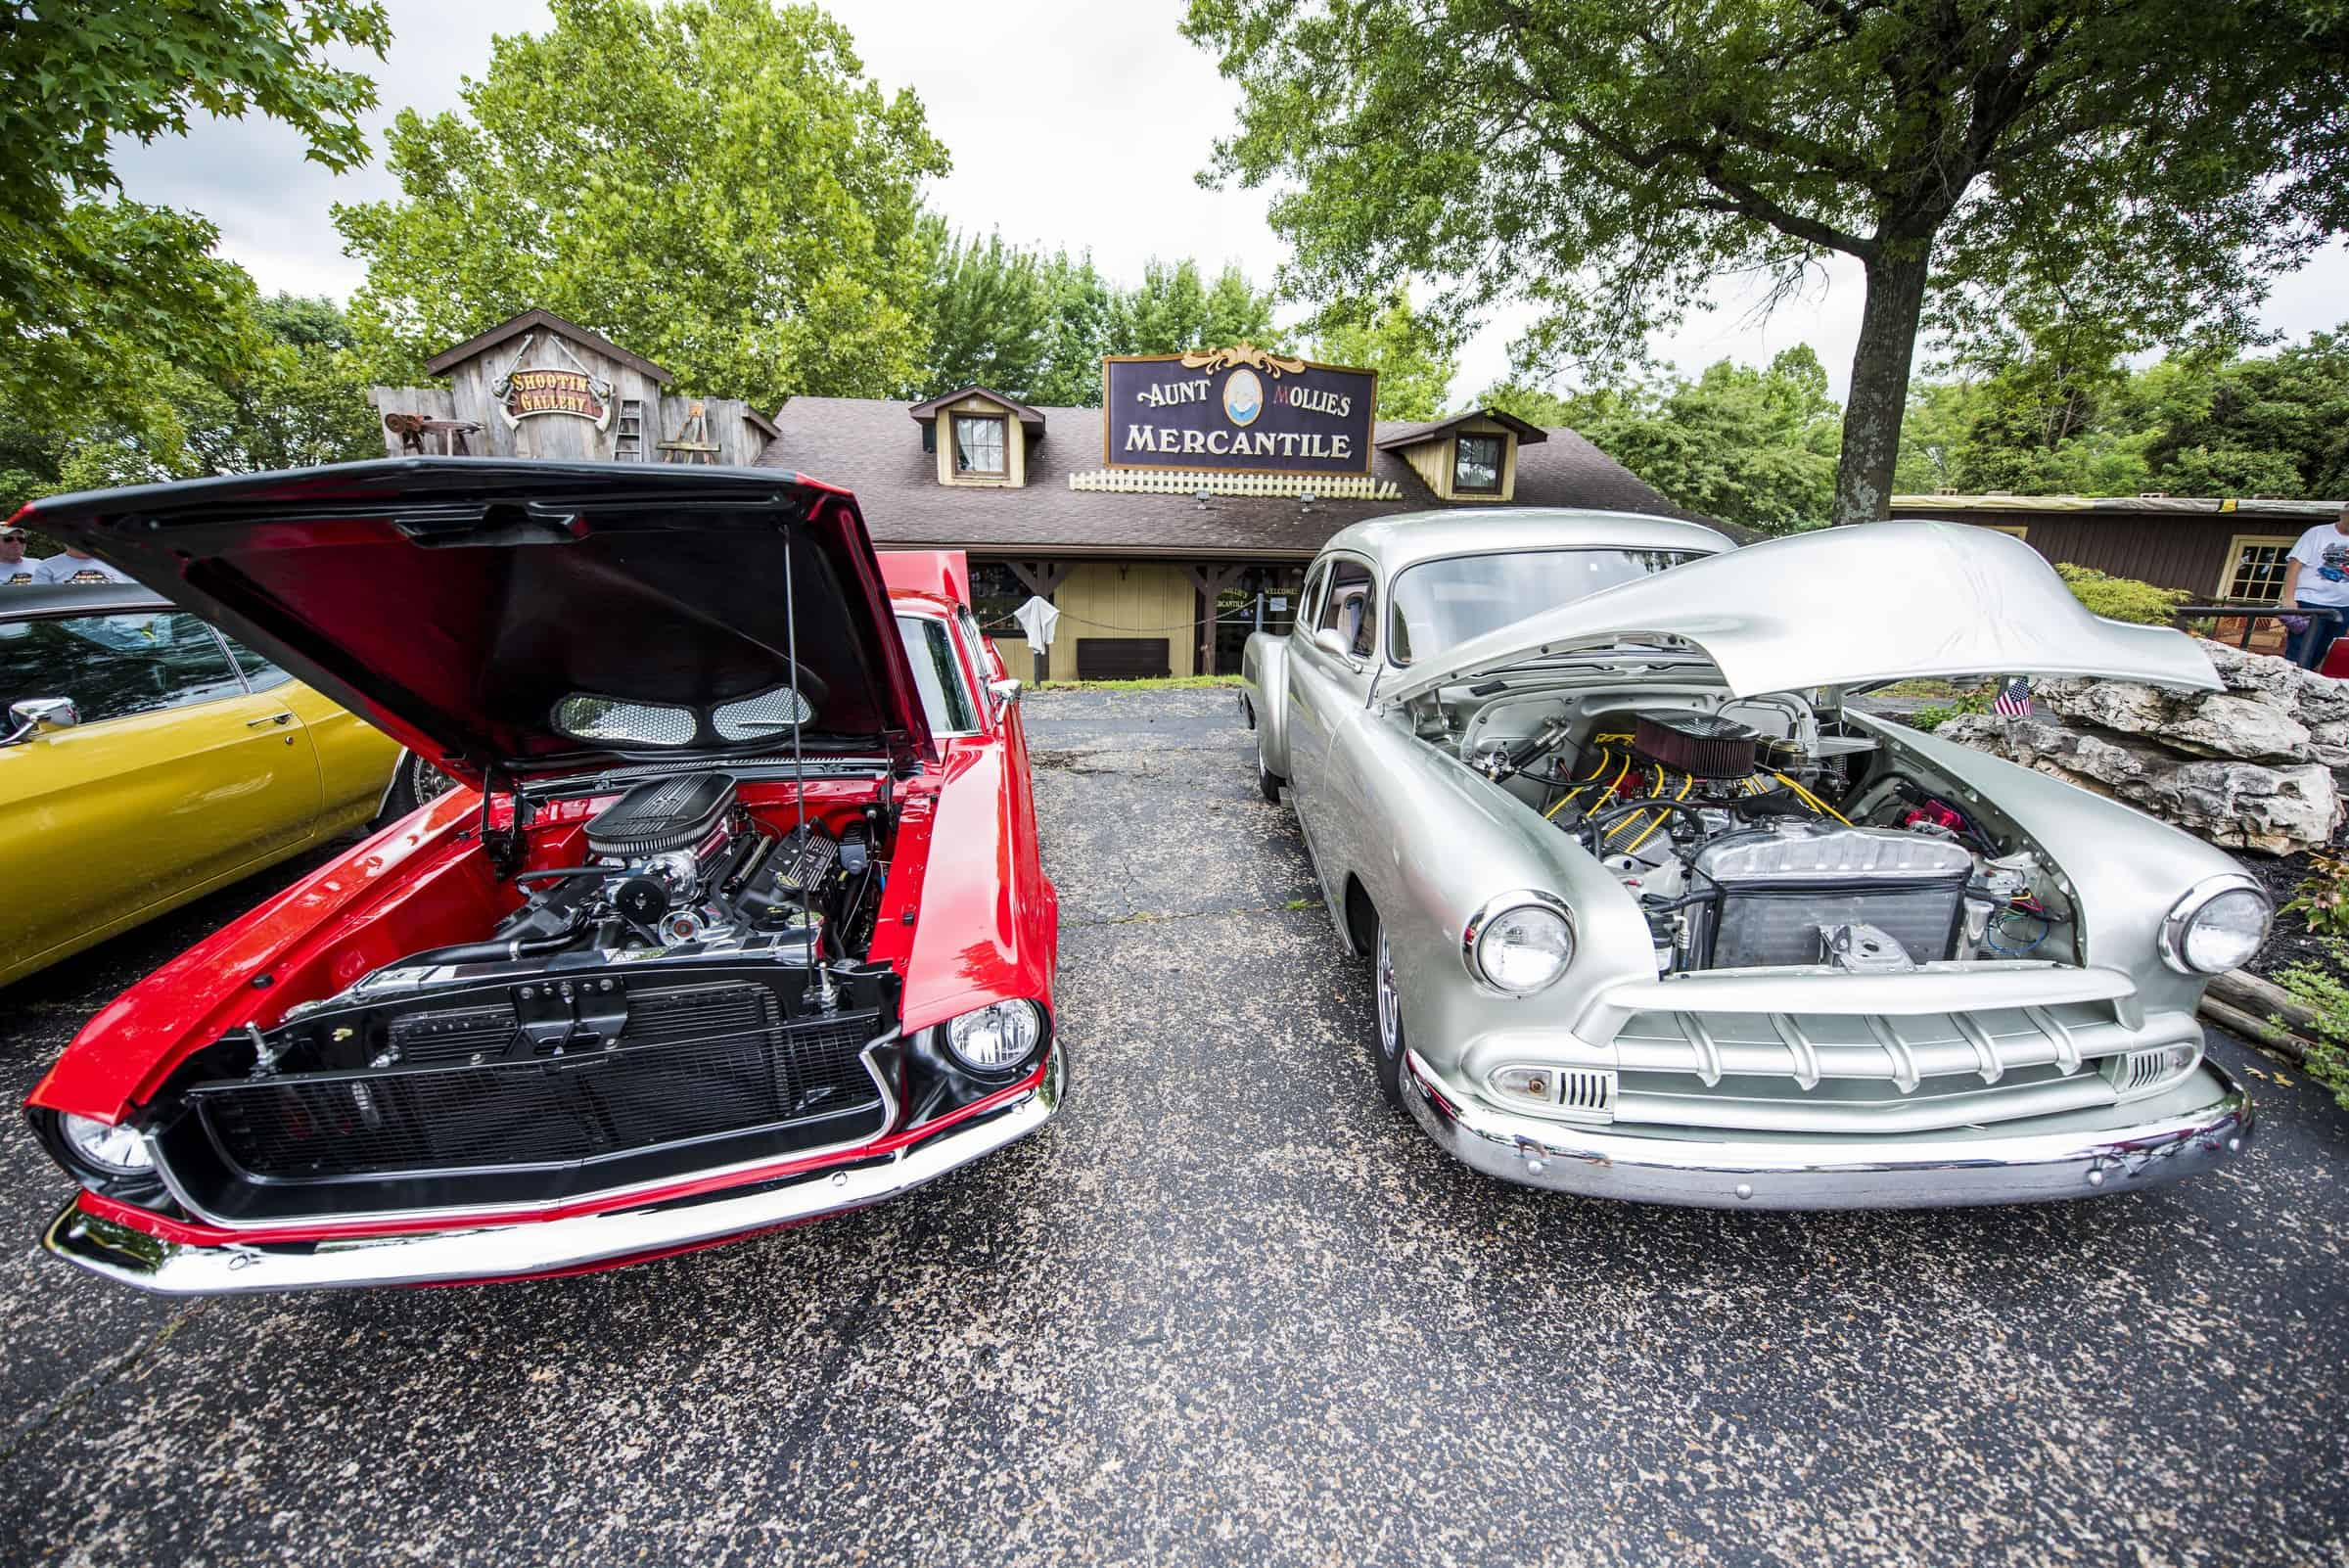 Shepherds Show N Shine Shepherd Of The Hills - Car show in branson mo 2018